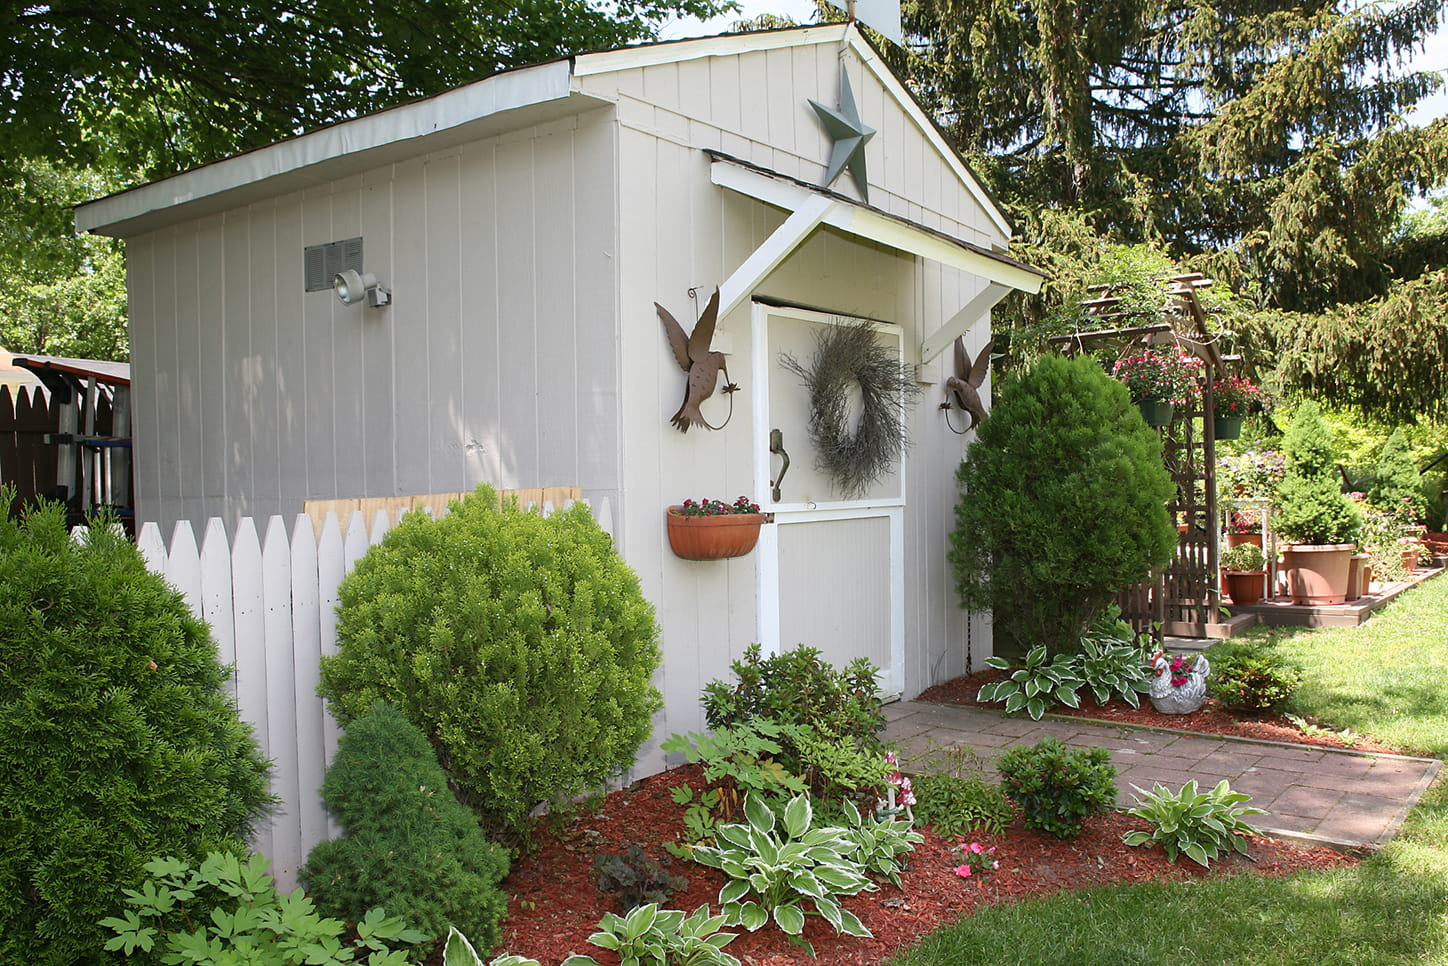 Cute shed